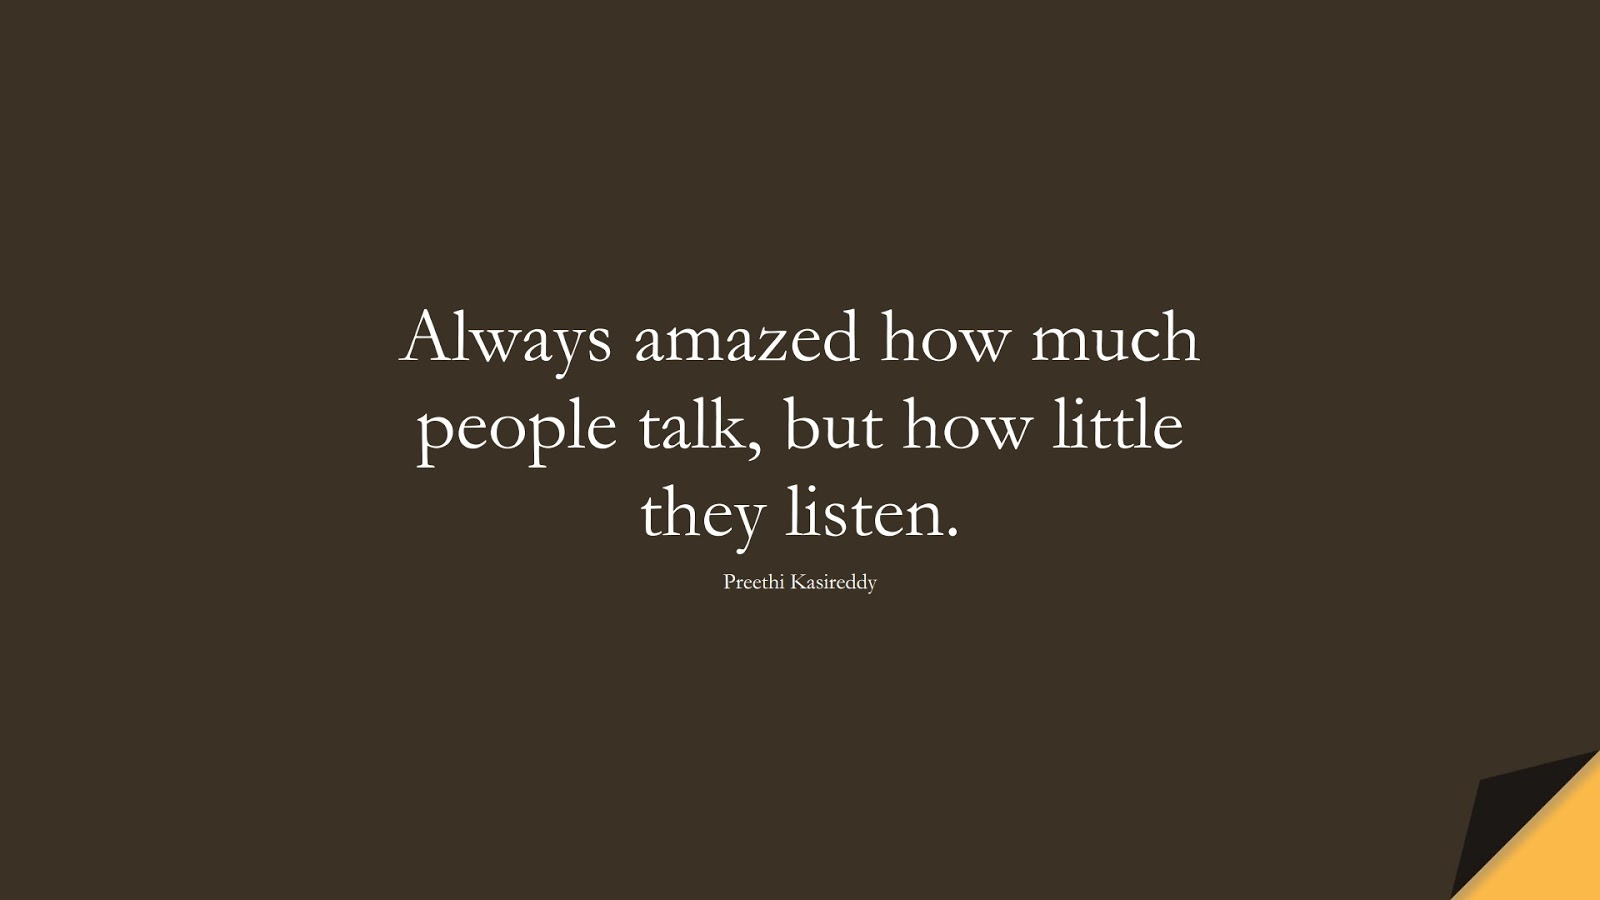 Always amazed how much people talk, but how little they listen. (Preethi Kasireddy);  #RelationshipQuotes